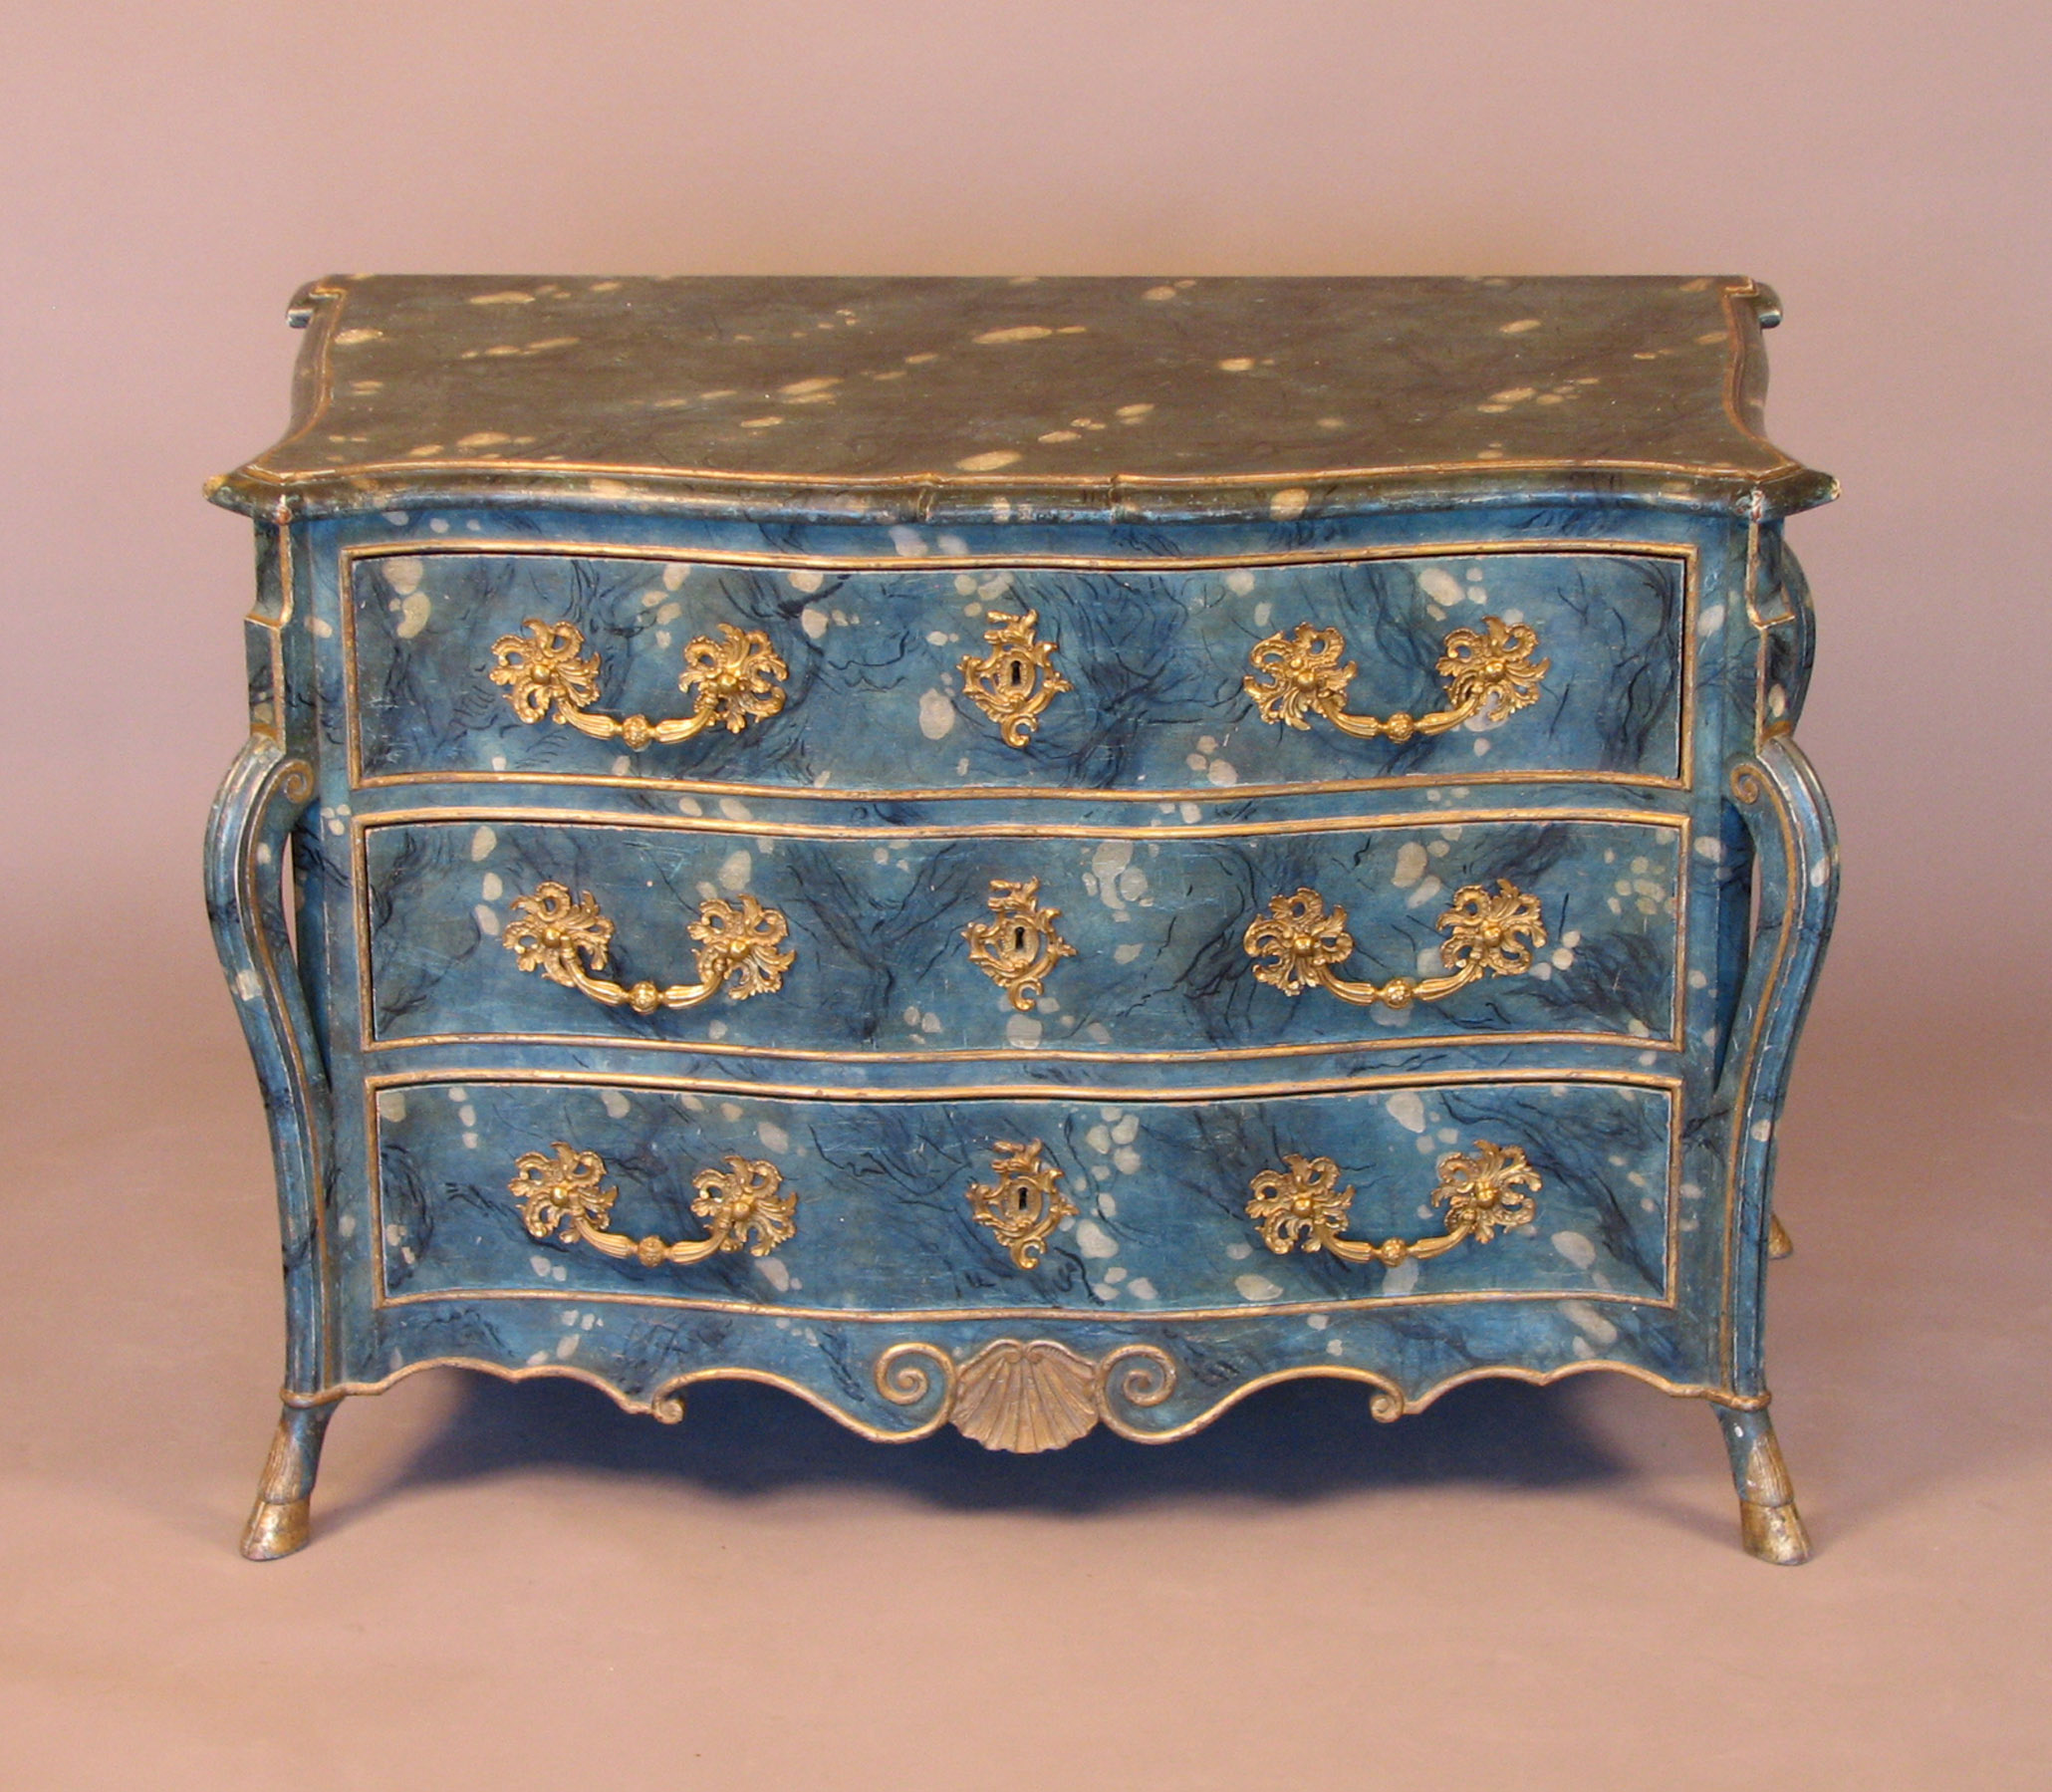 Thumbnail image for Unusual 18th Century Regence Period Commode